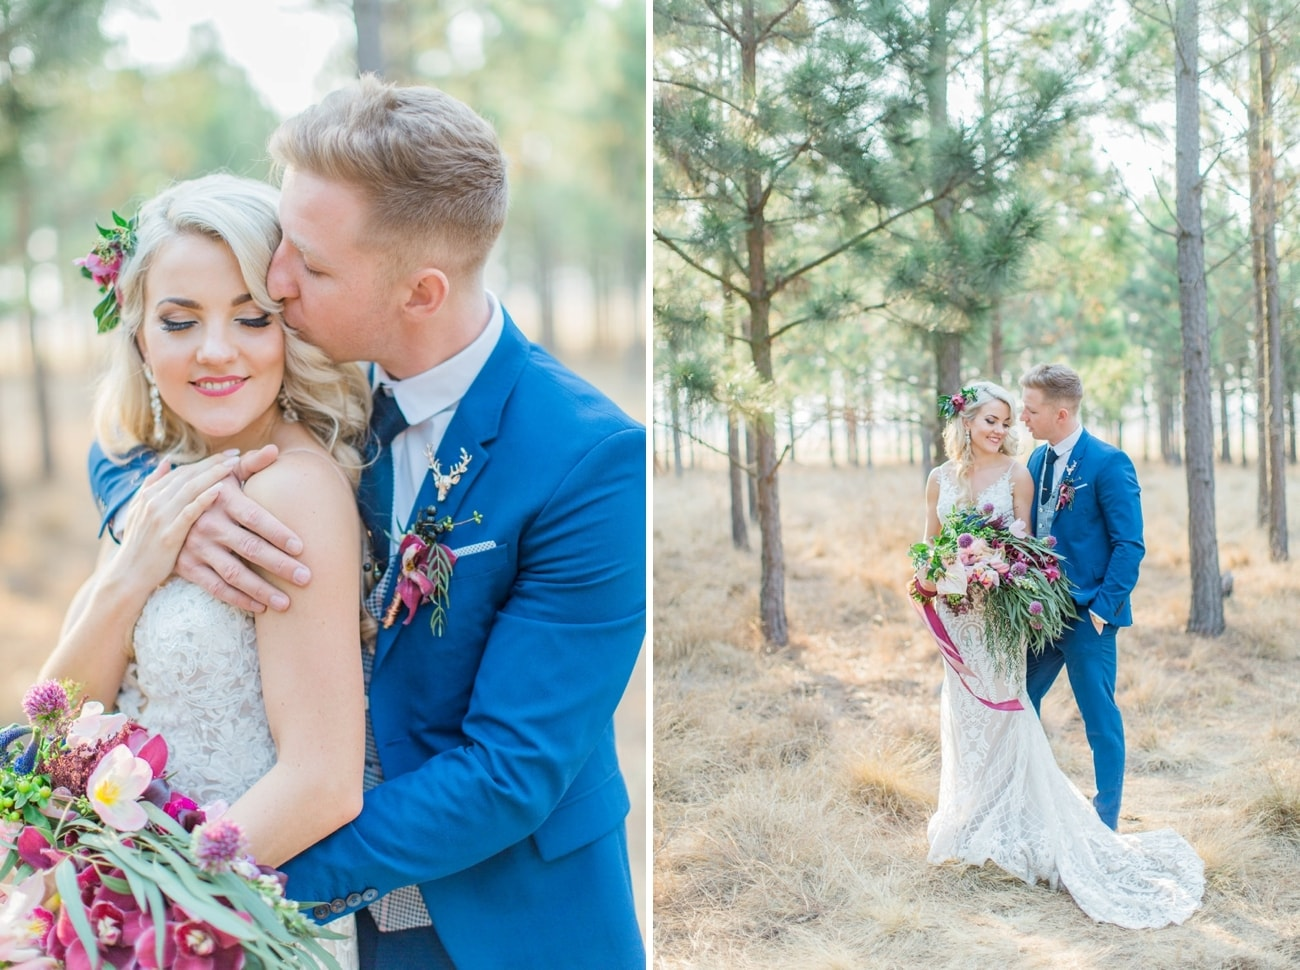 Groom in Blue Suit | Image: Grace Studios